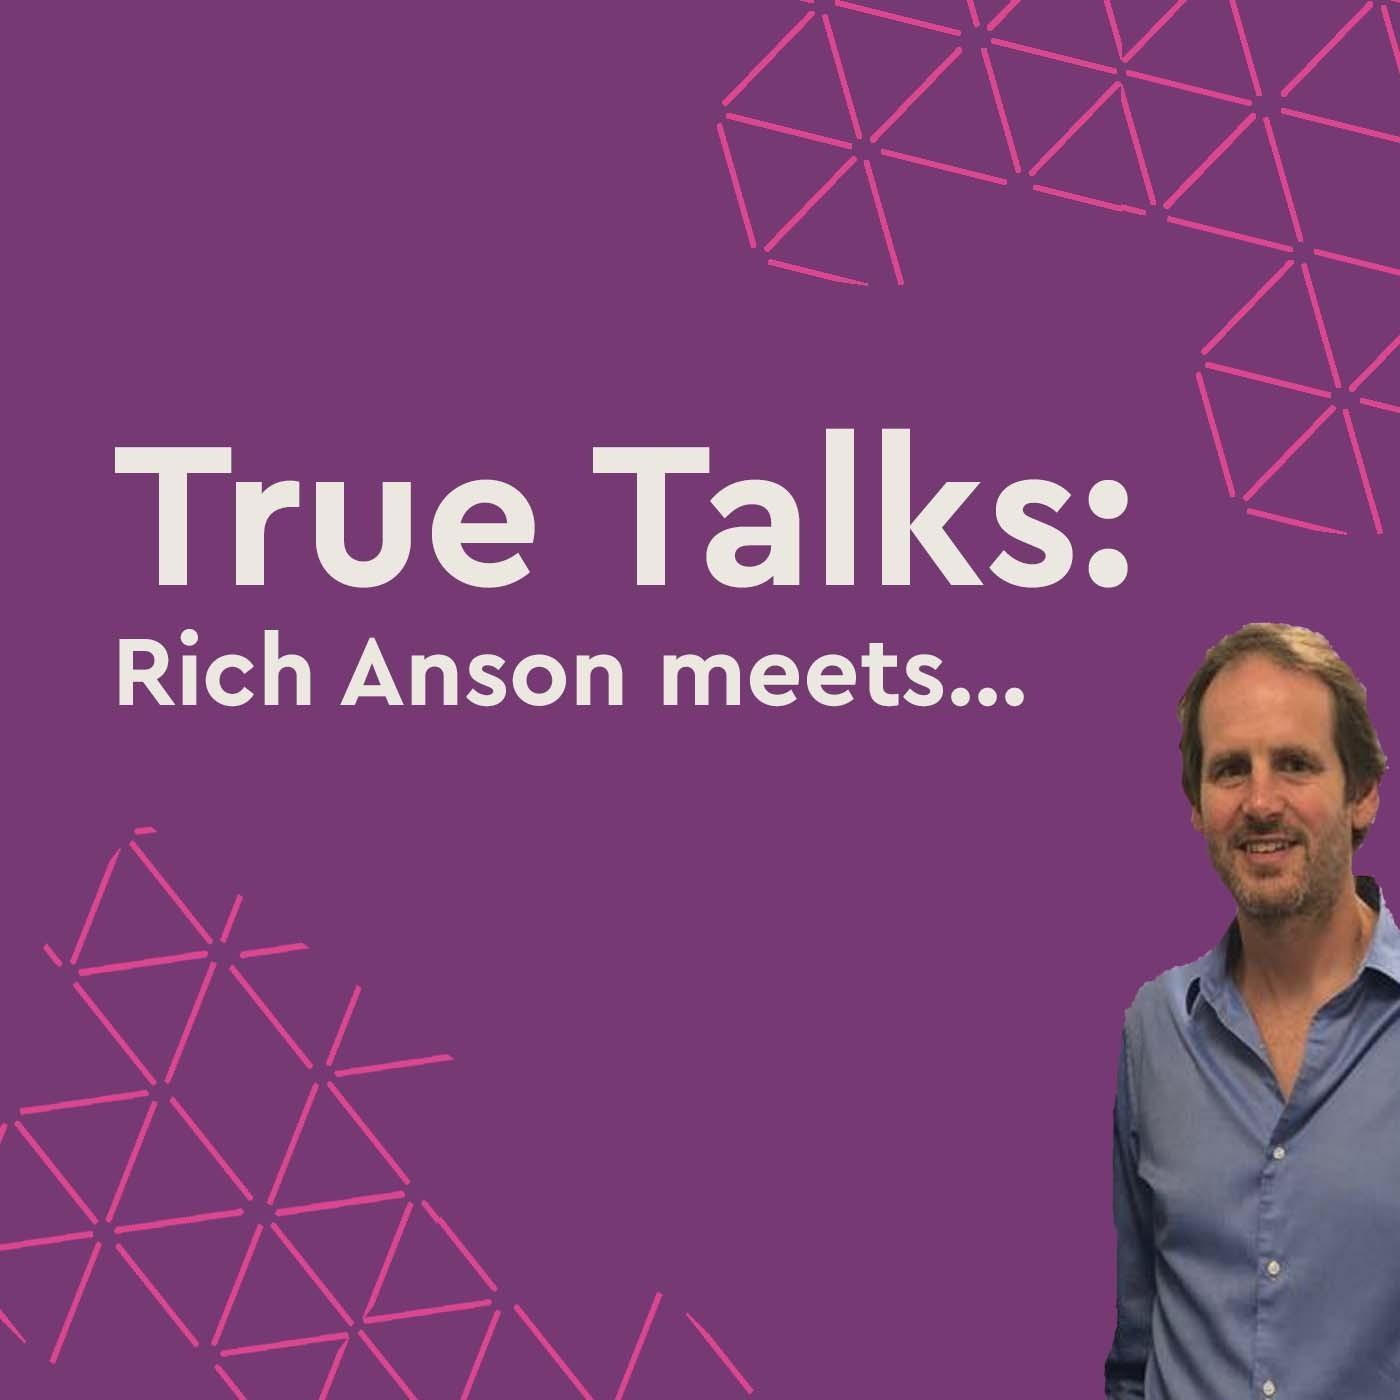 True Talks: Rich Anson meets...